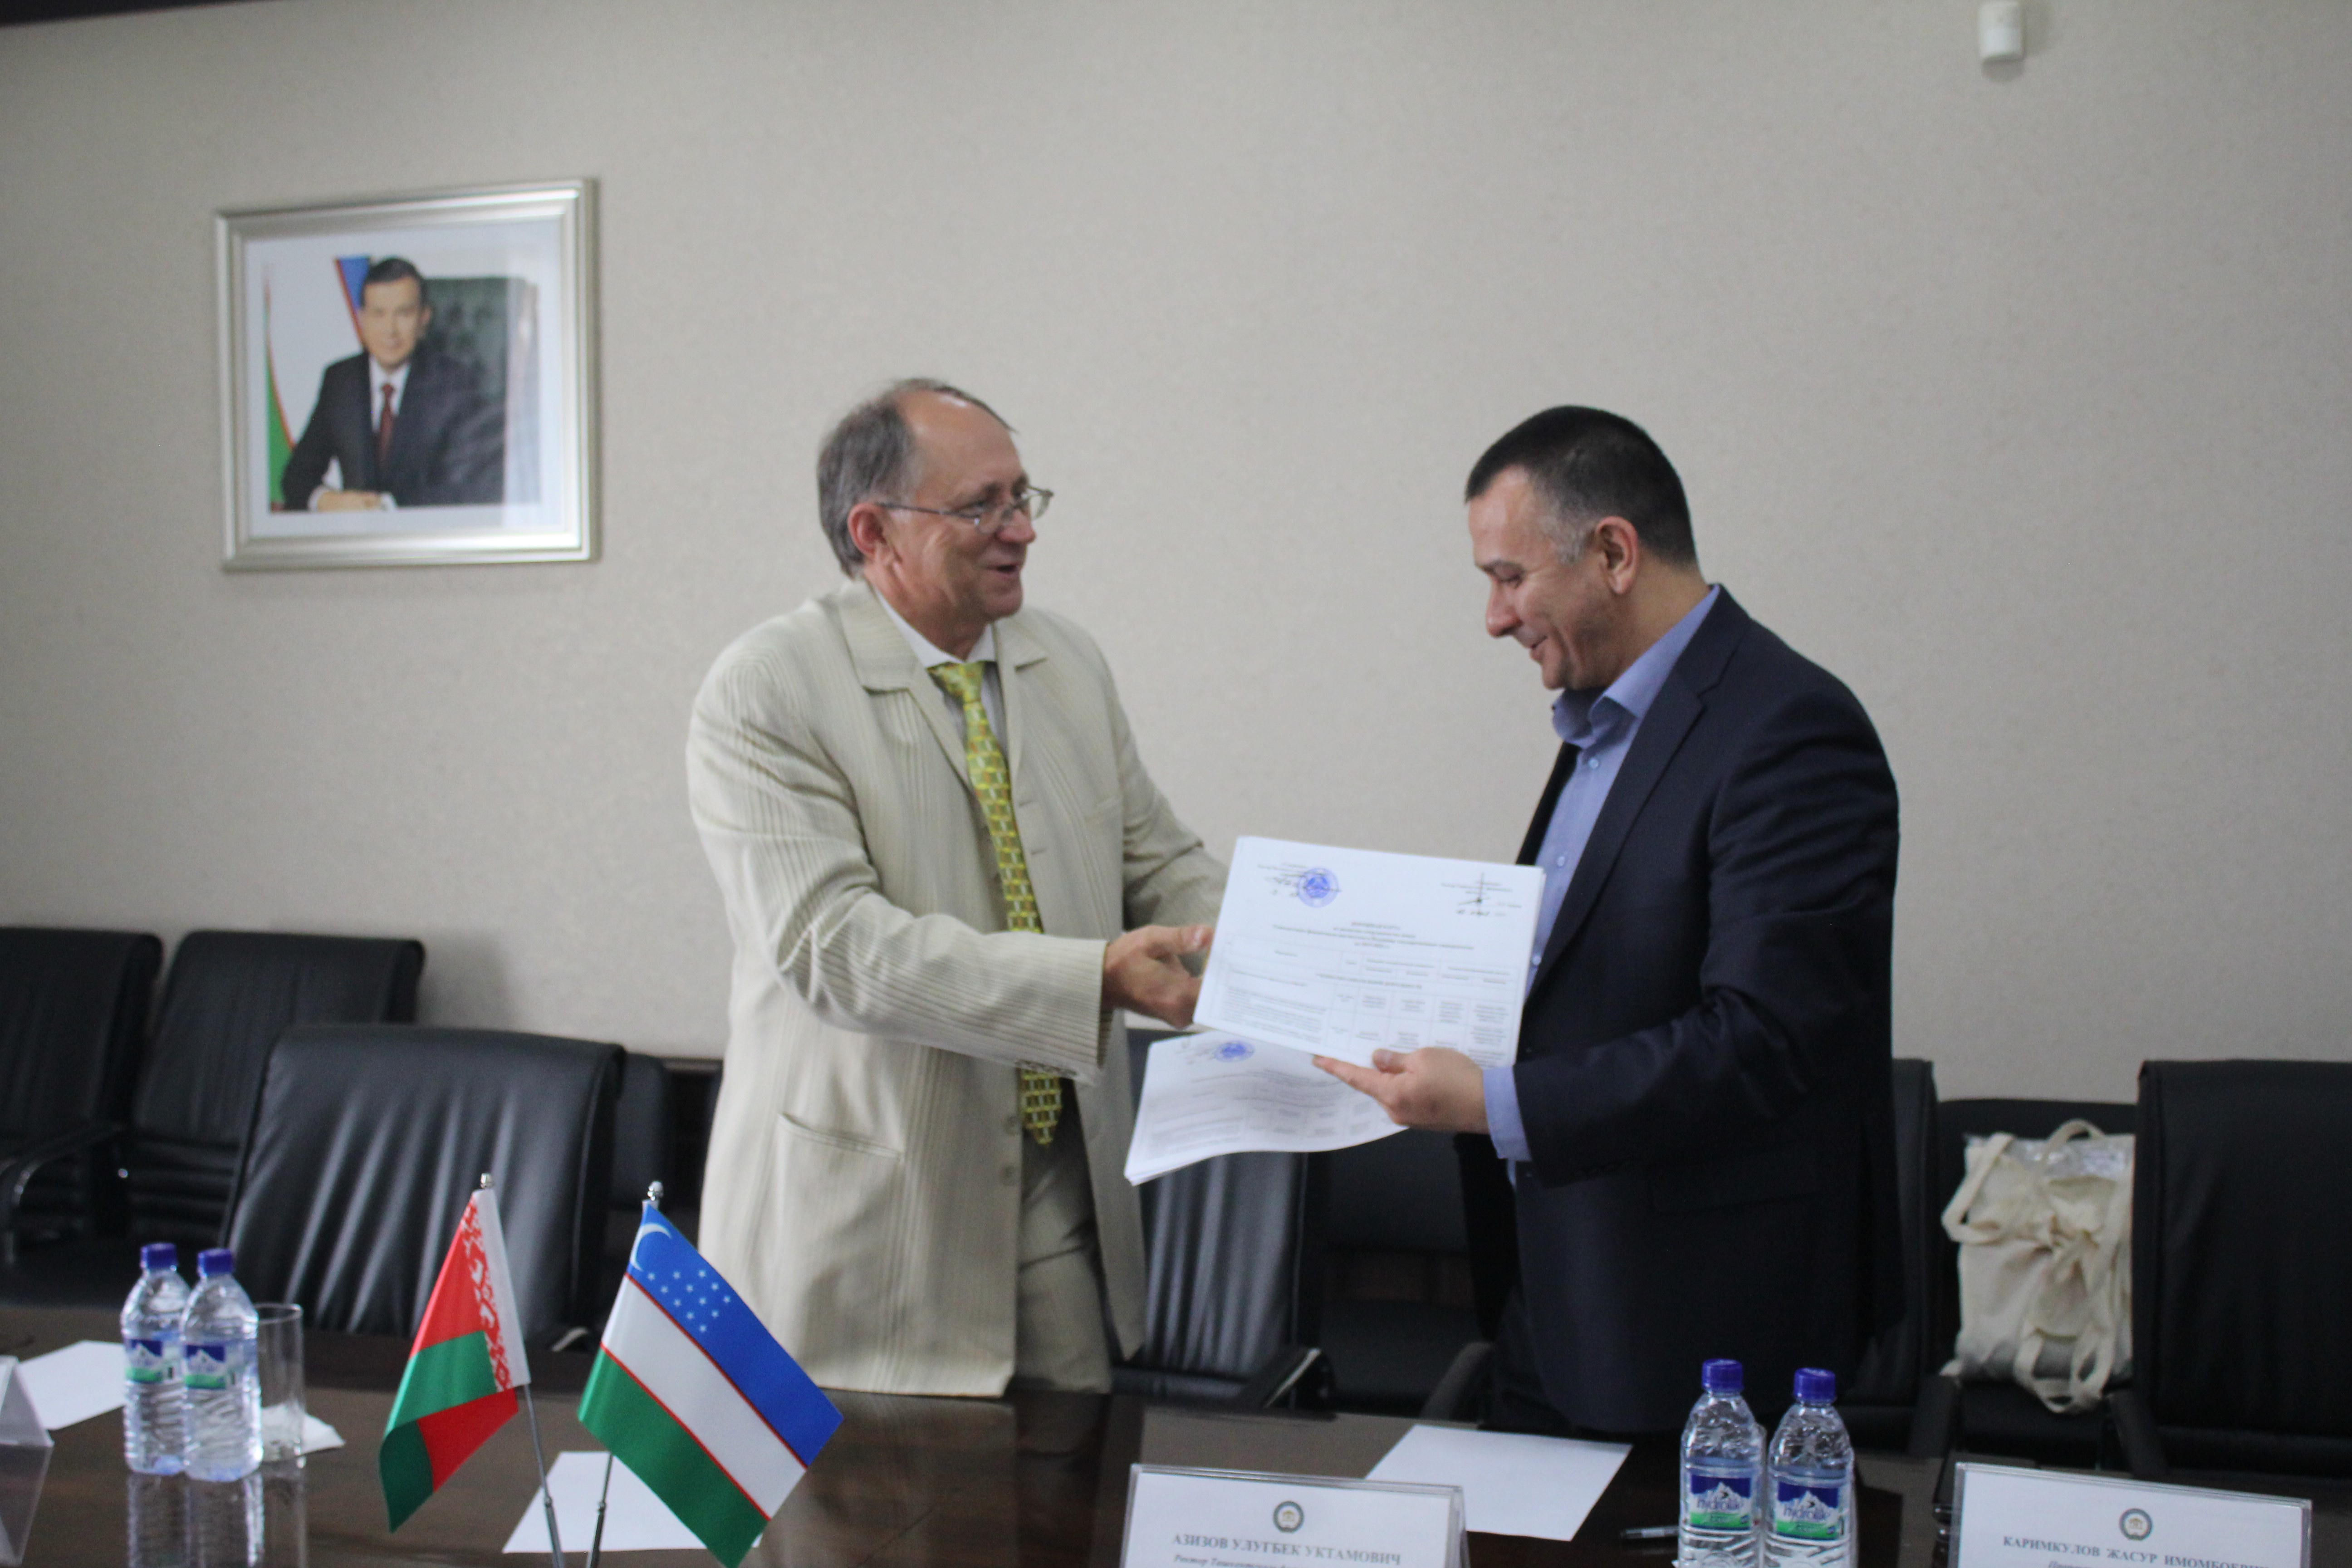 BGS News The cooperation was strengthened: a joint faculty with Polotsk State University